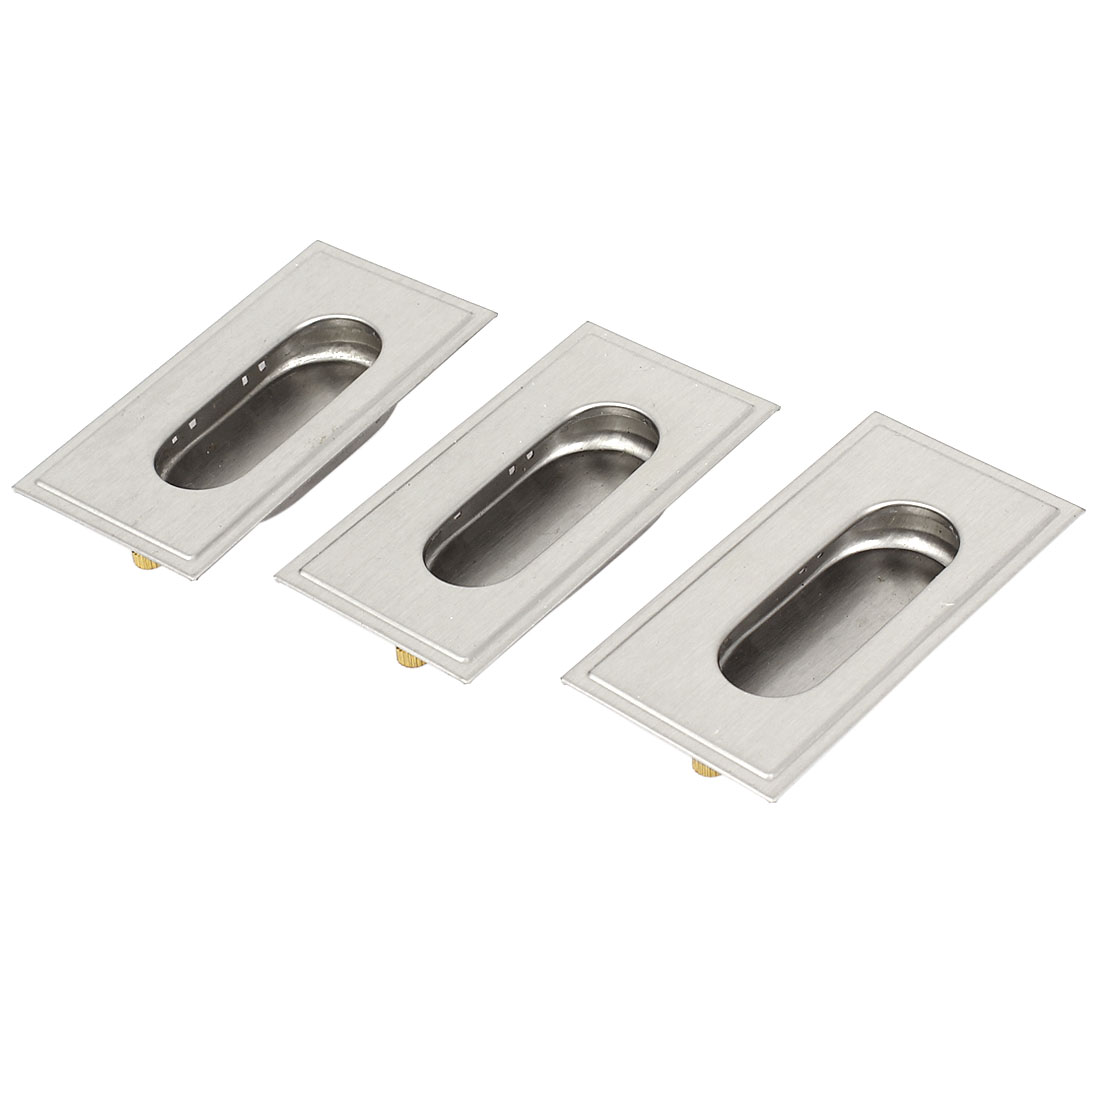 Sliding Door Drawer 79 x 42mm Stainless Steel Recessed Flush Pull Handle 3pcs